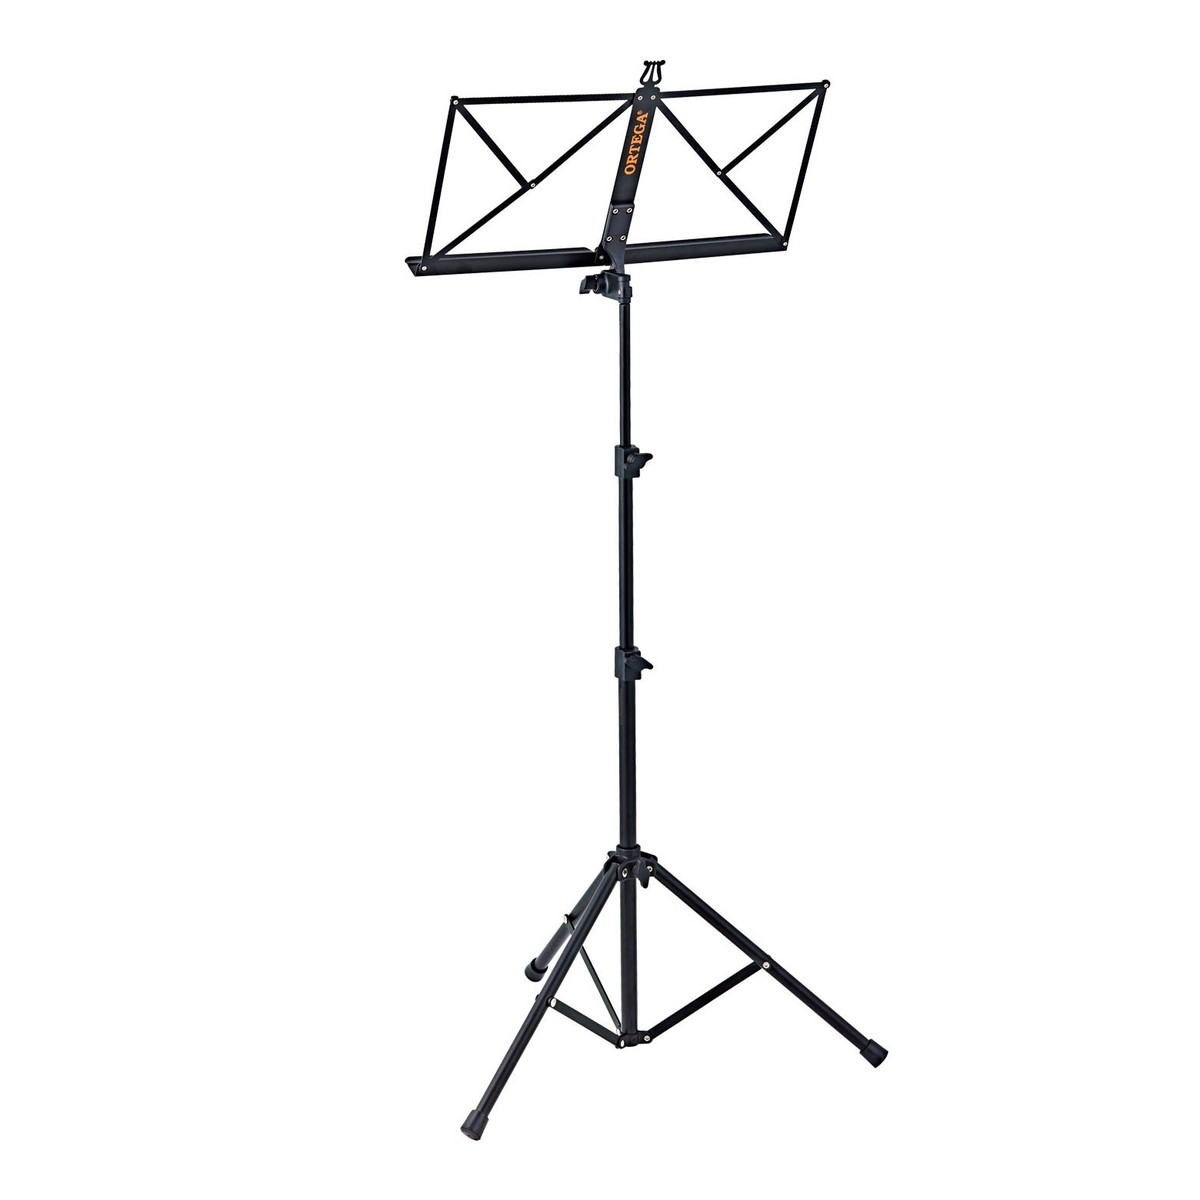 Ortega Oms 1bk Portable Music Stand Black At Gear4music